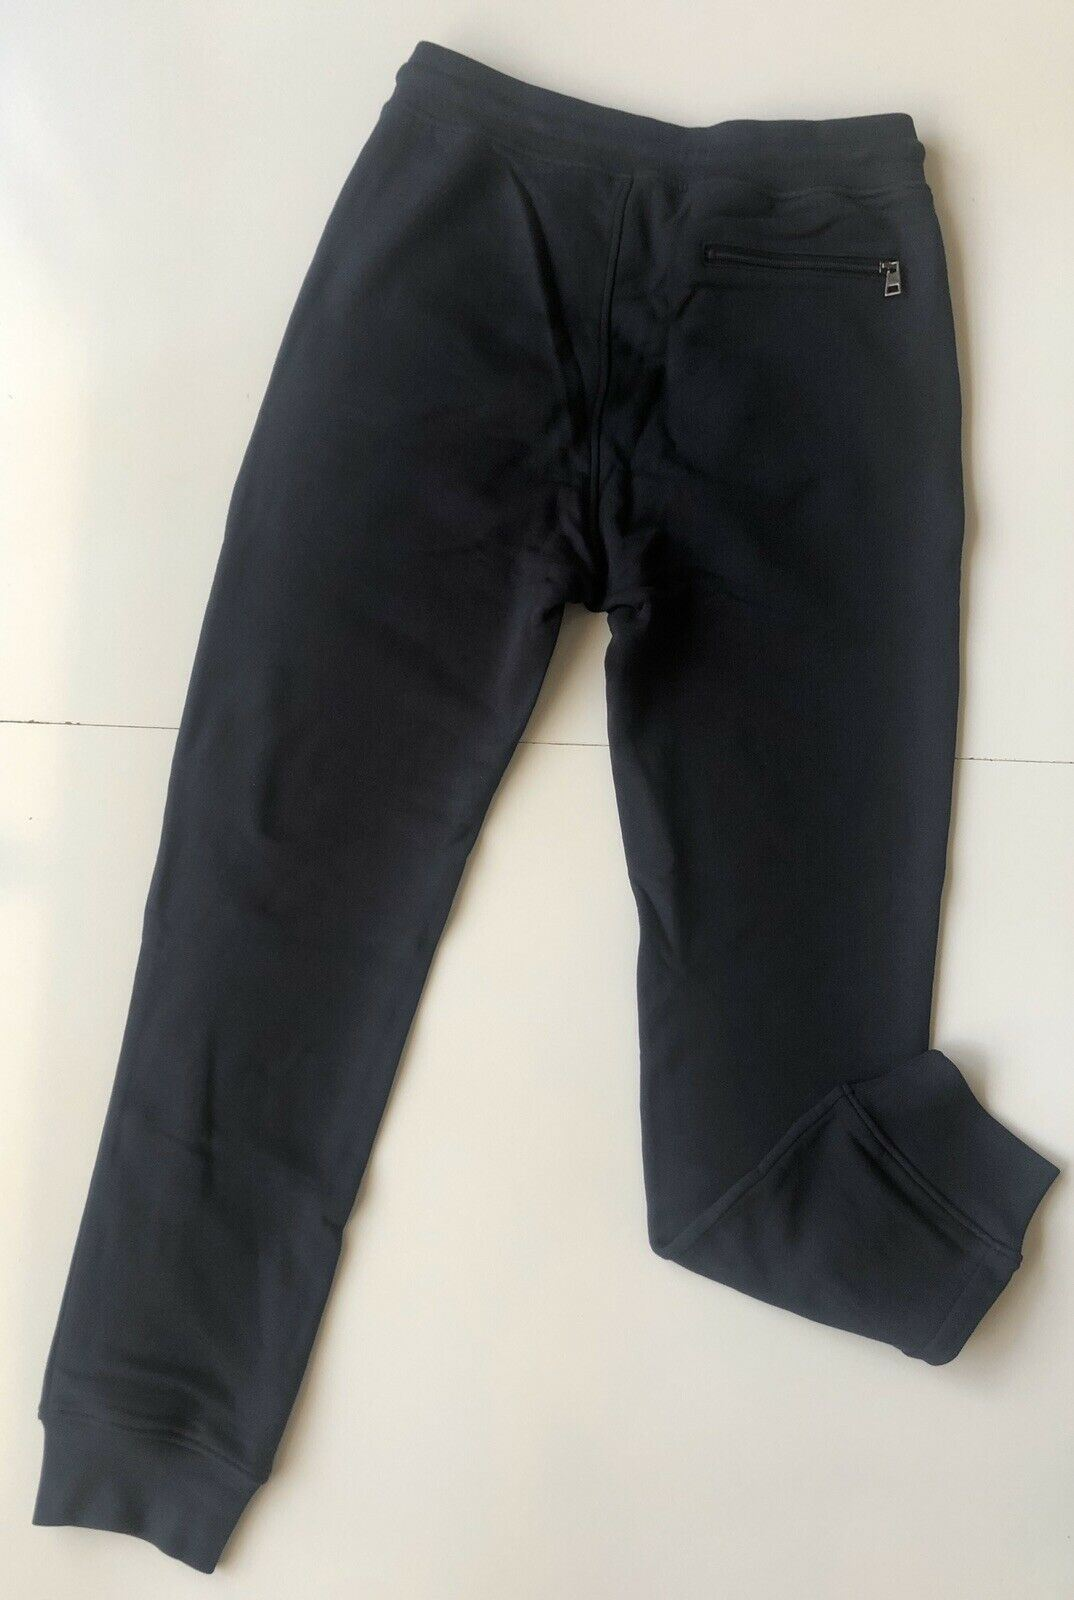 NWT $270 Armani Jeans Modern Men's Cotton Sport Pants Size XL